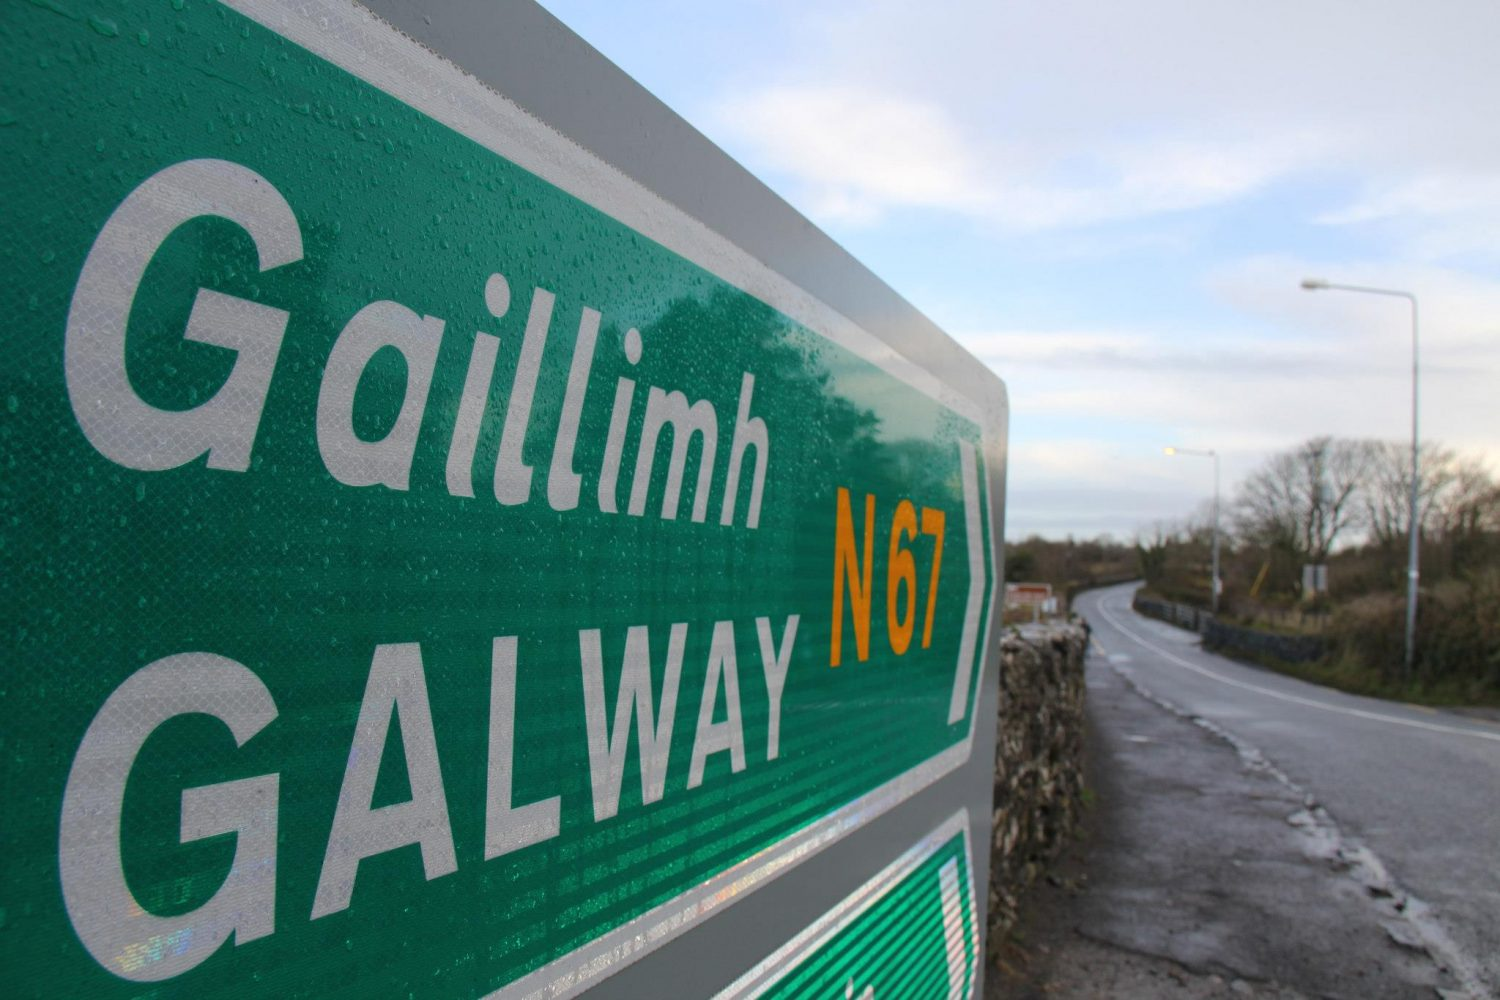 NOTICE TO ALL GALWAY CUSTOMERS